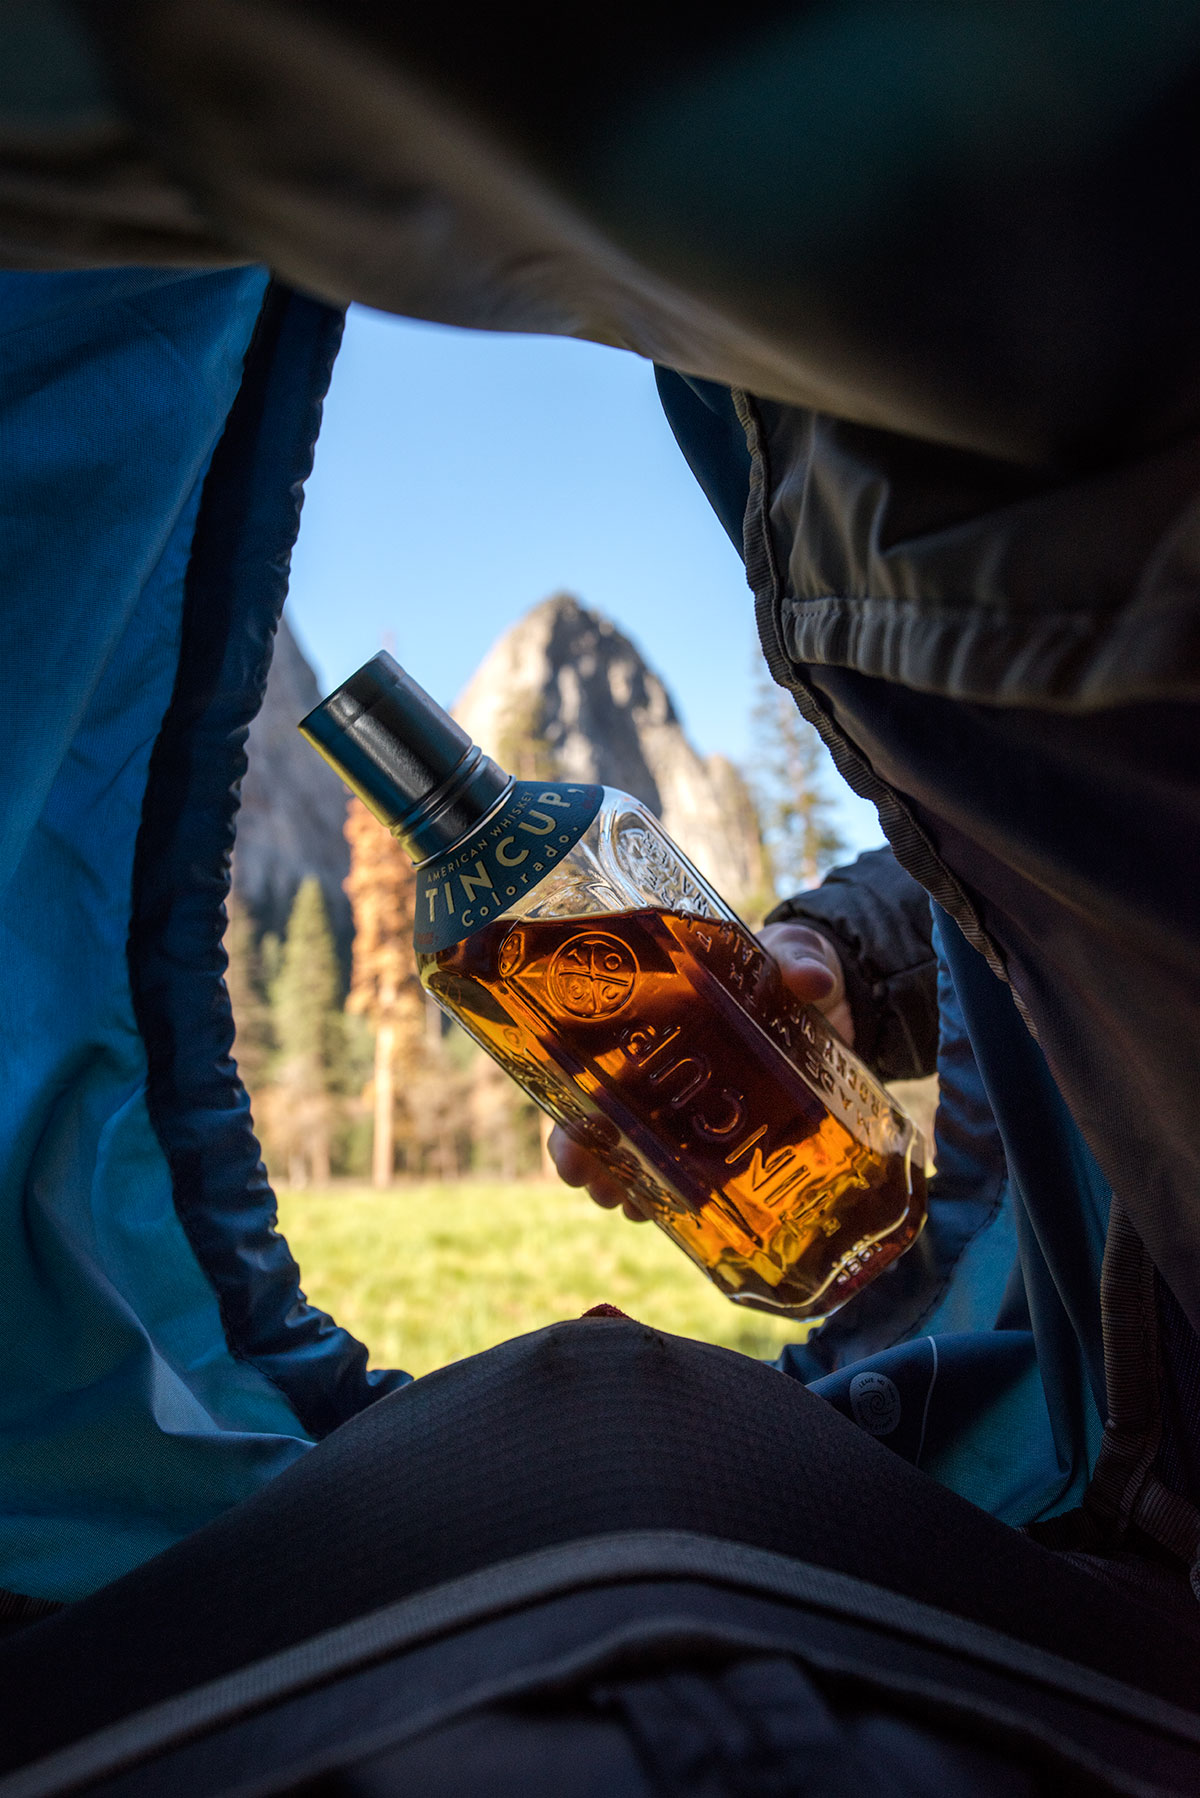 austin-trigg-whiskey-yosemite-product-TINCUP-El-Capitan-Meadow-Packing-backpack-mountain-bottle.jpg